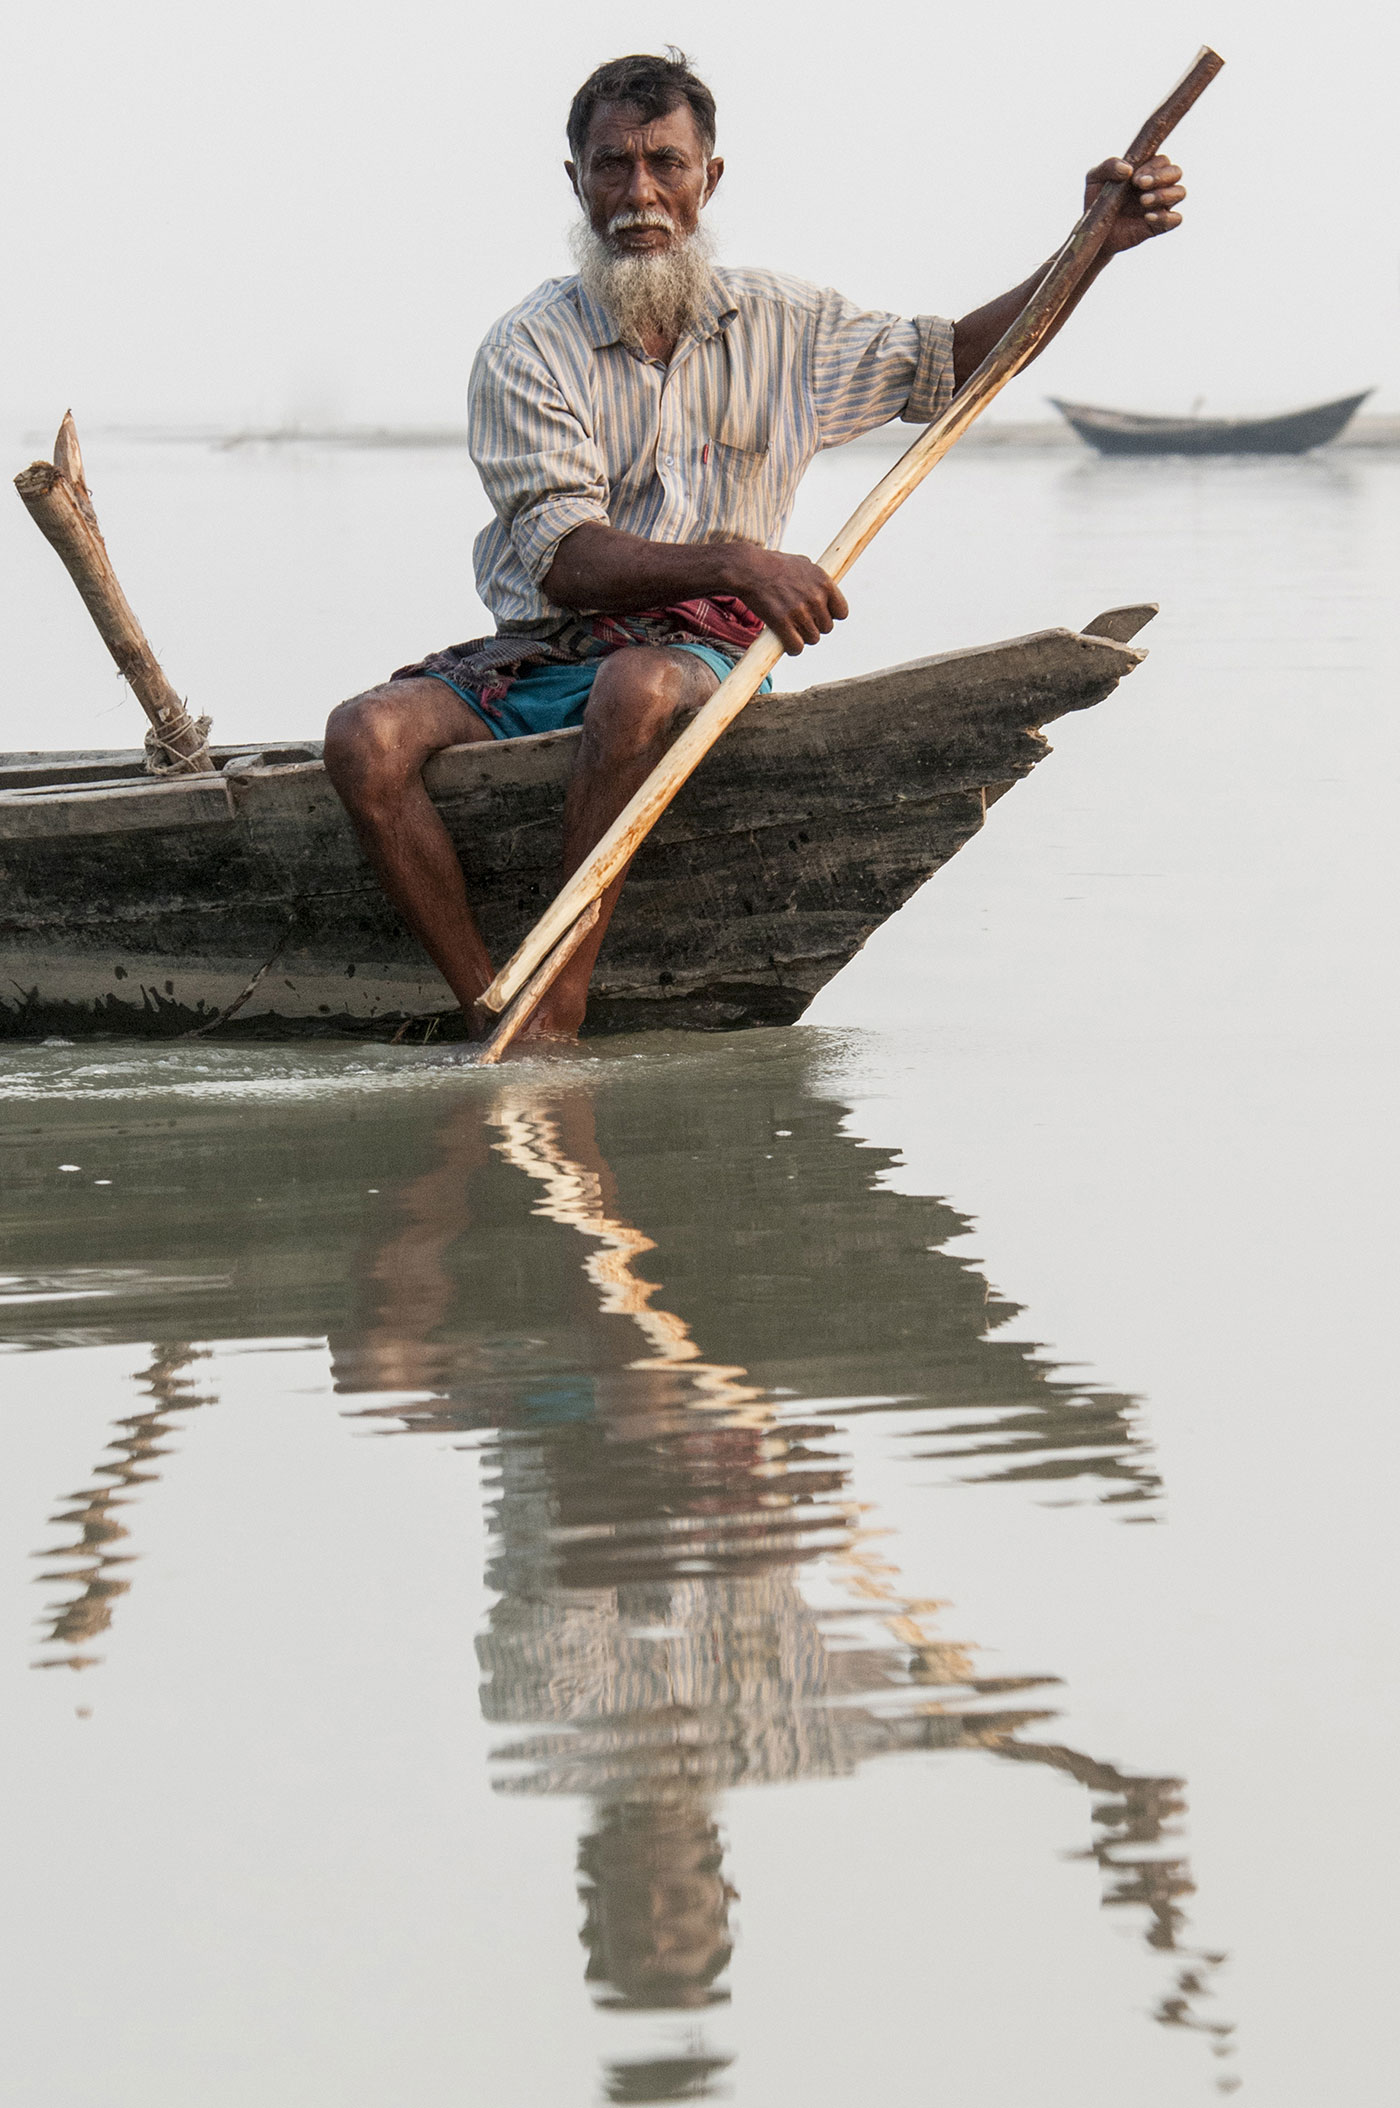 A fisherman in Bangladesh.